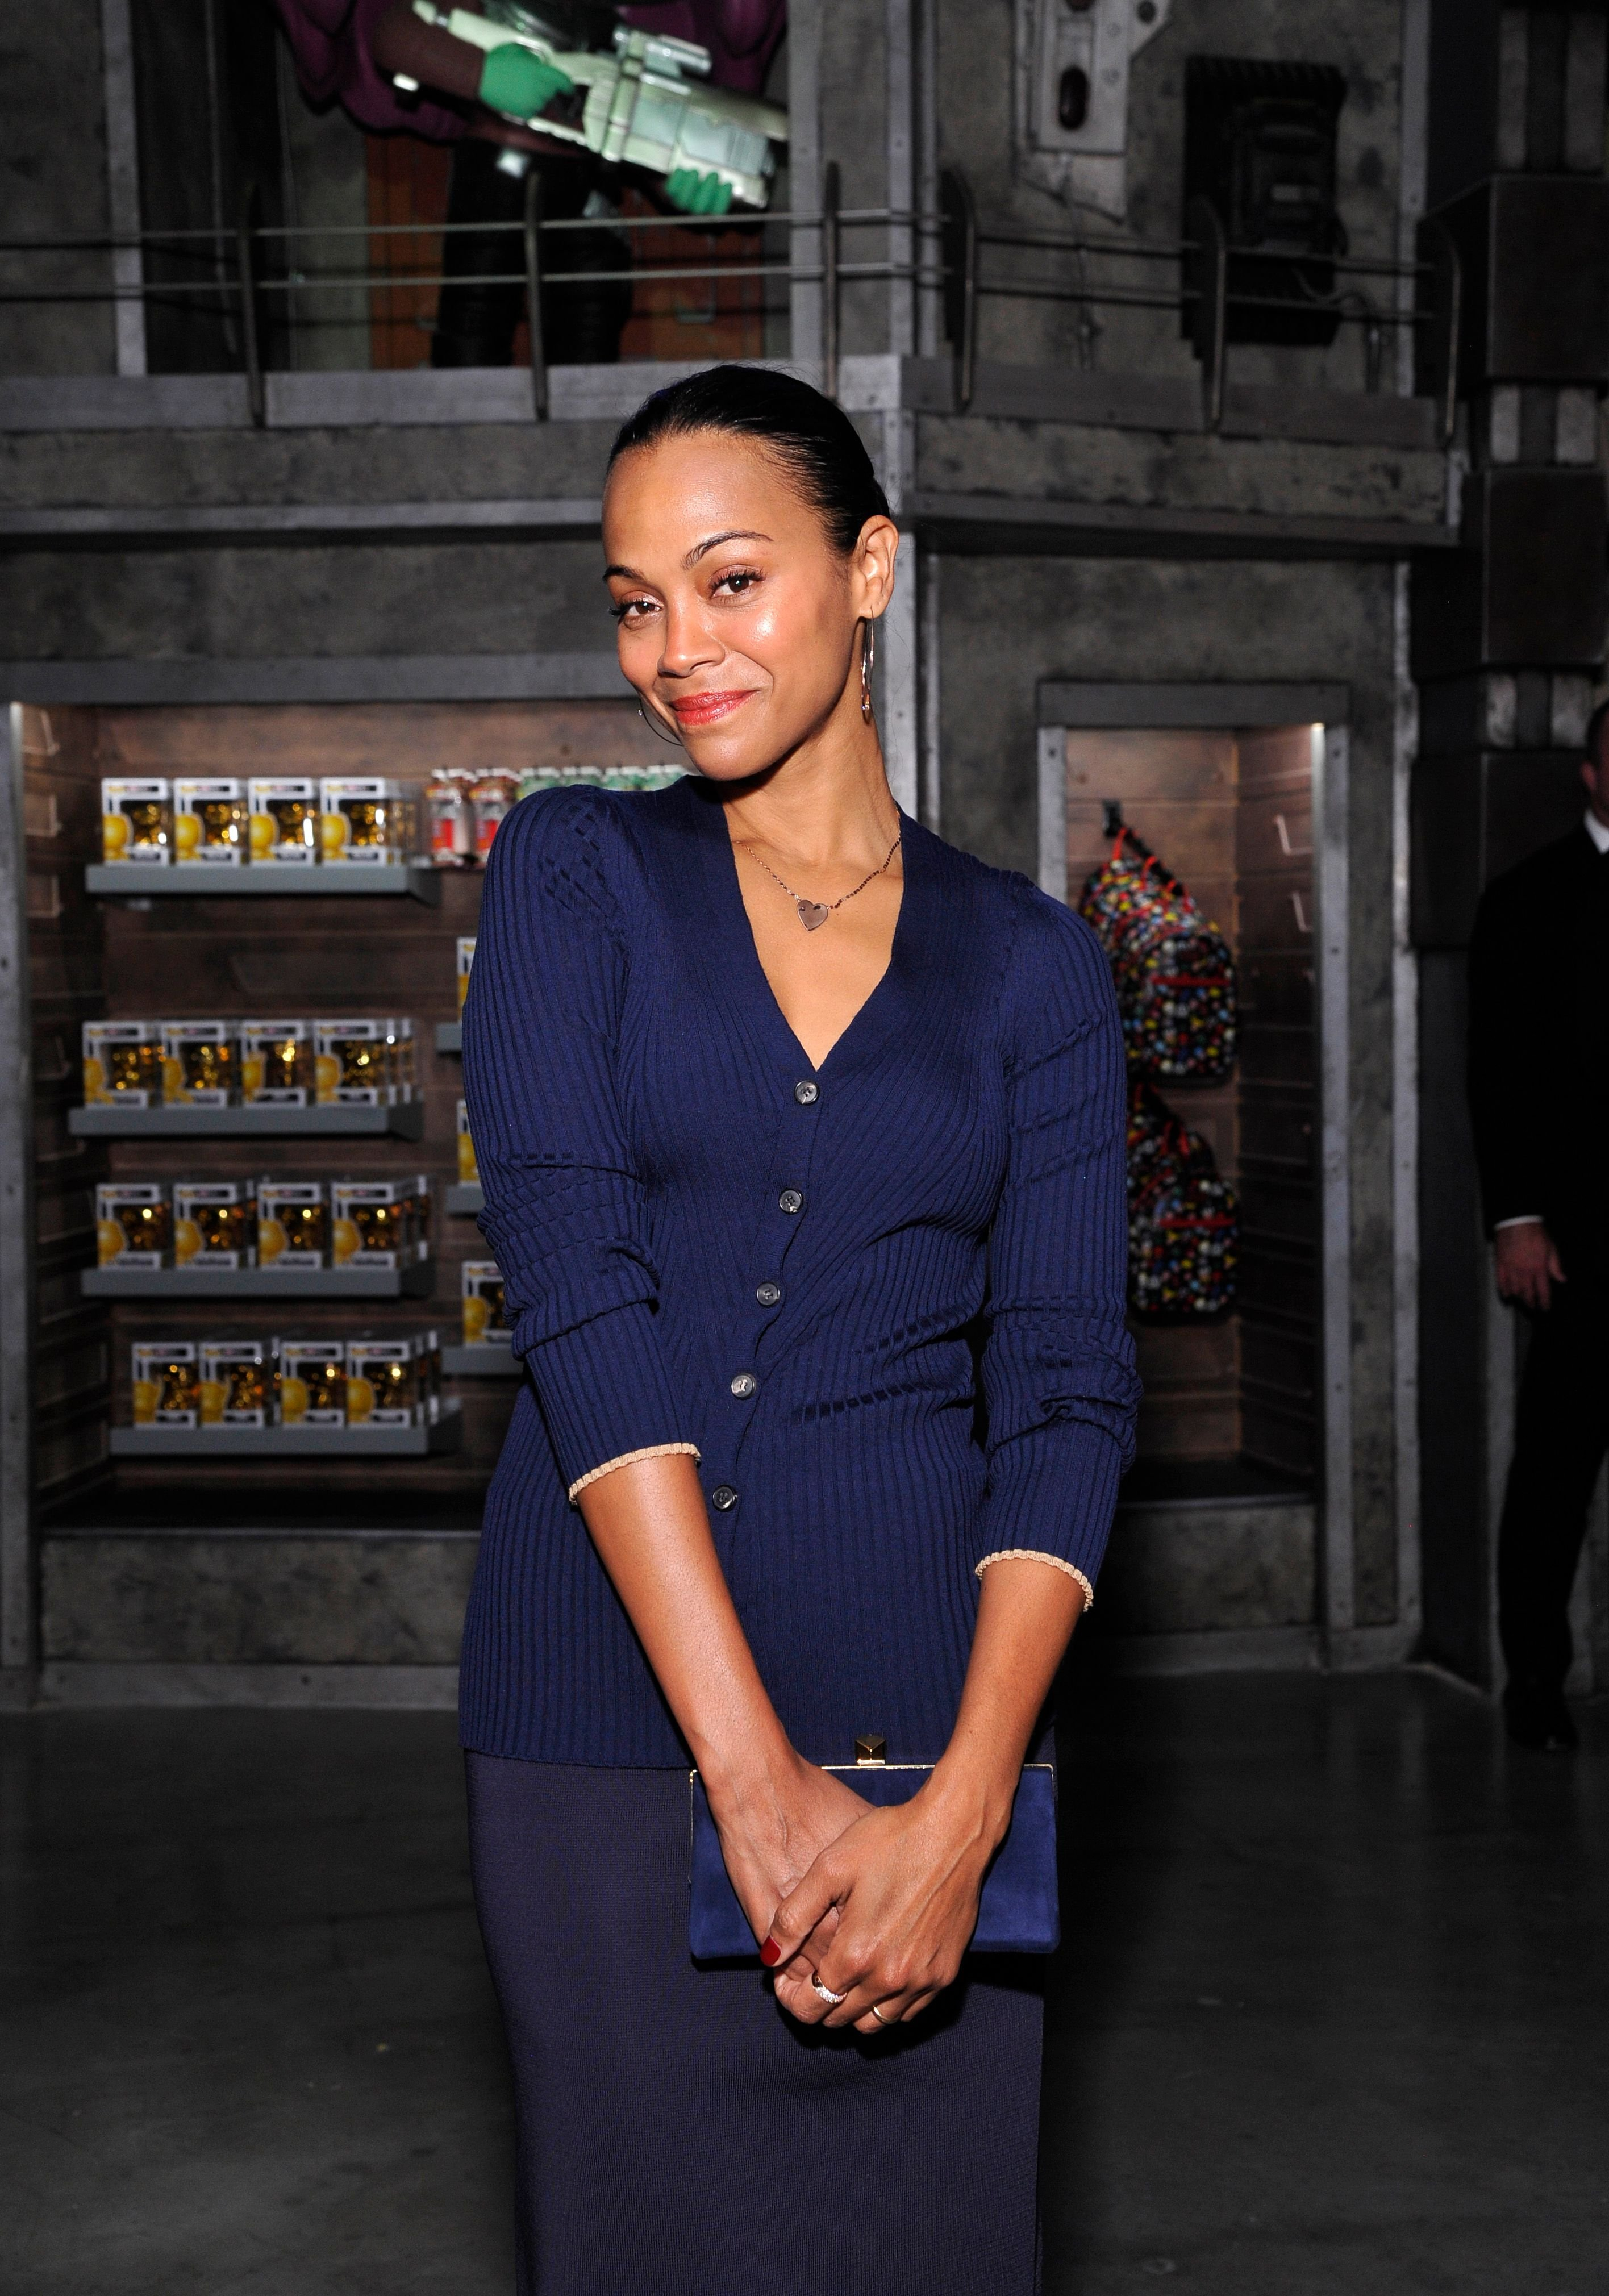 Zoe Saldana attends the Funko Hollywood VIP Preview Event at Funko Hollywood on November 07, 2019 in Hollywood, California. | Source: Getty Images